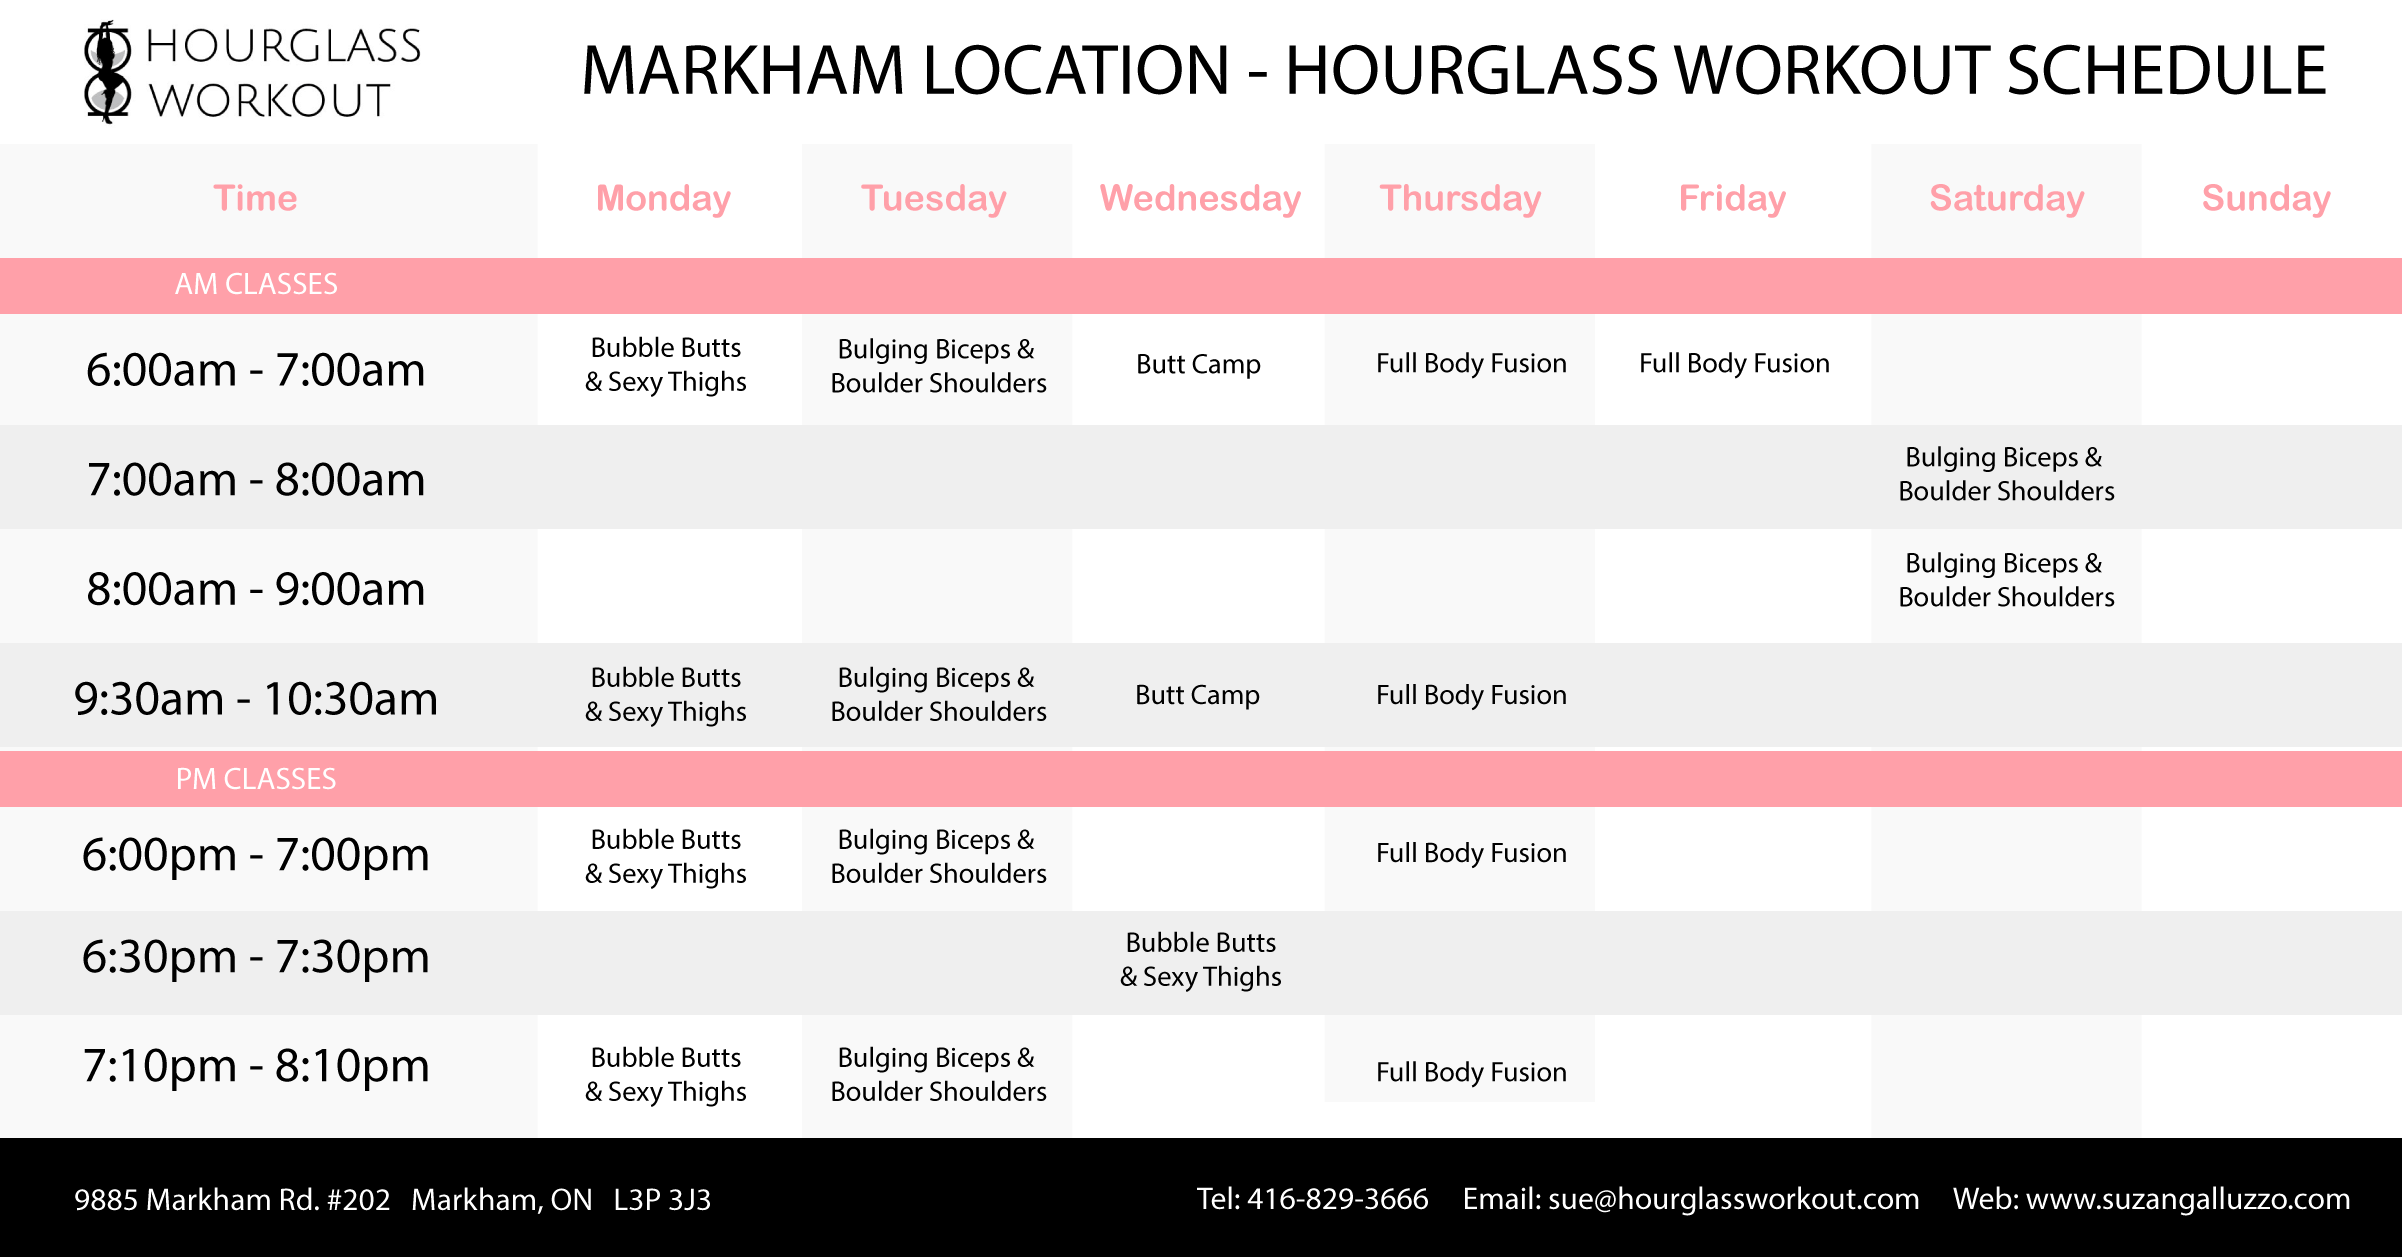 Hourglass Workout - Markham Studio